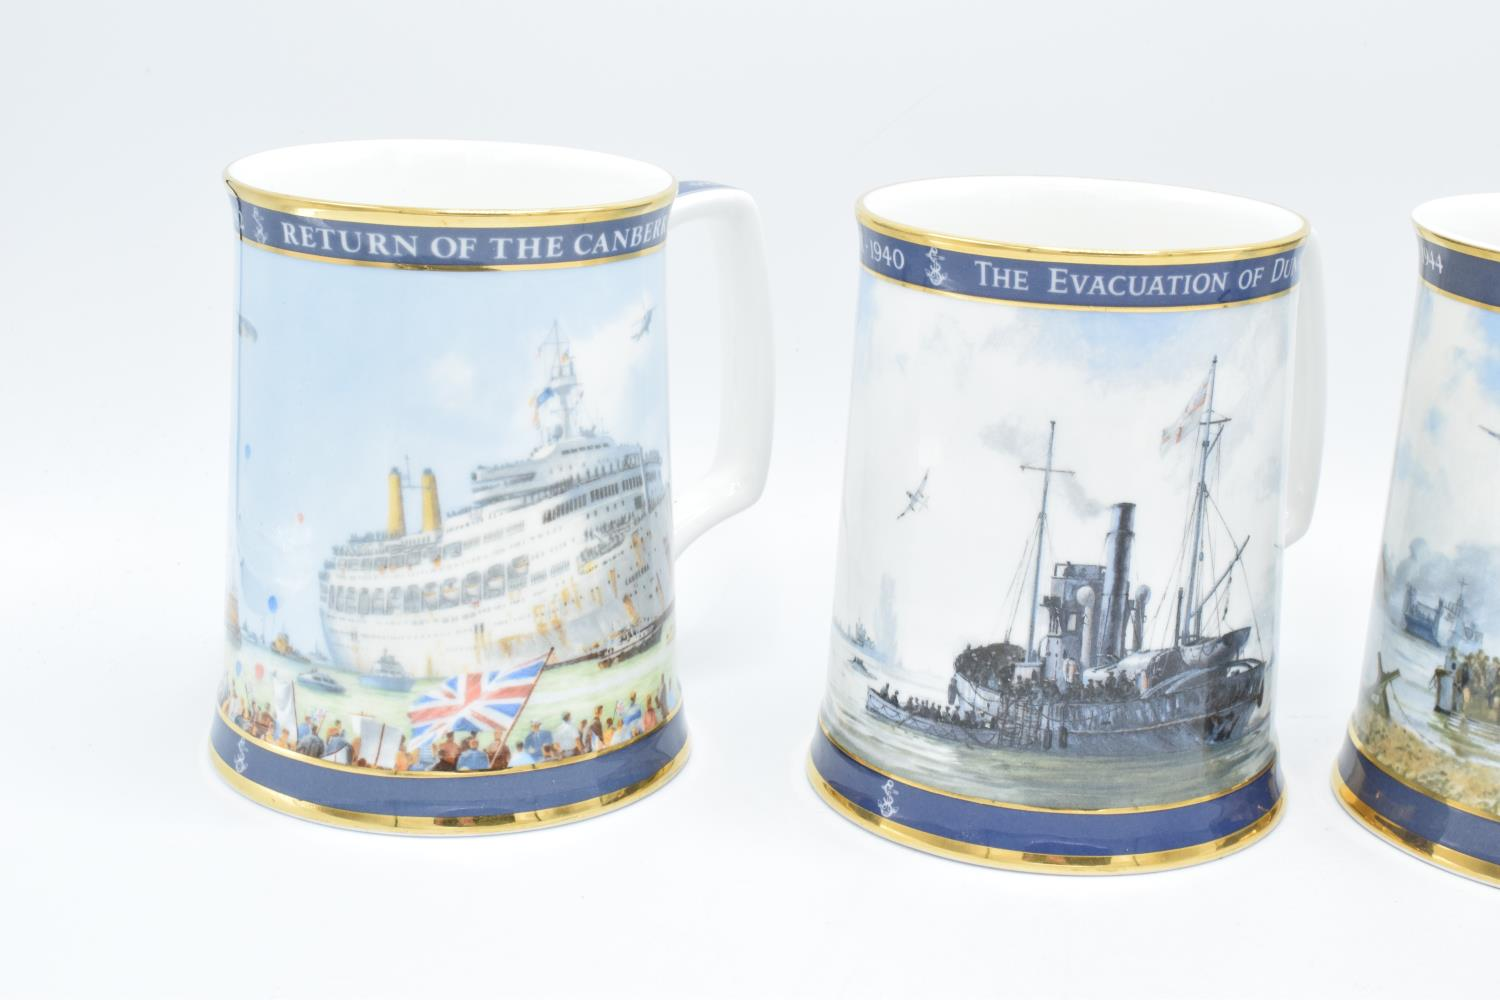 A collection of Royal Doulton tankards to commemorate Gulf War, D-day Landings, Dunkirk and the - Image 2 of 3